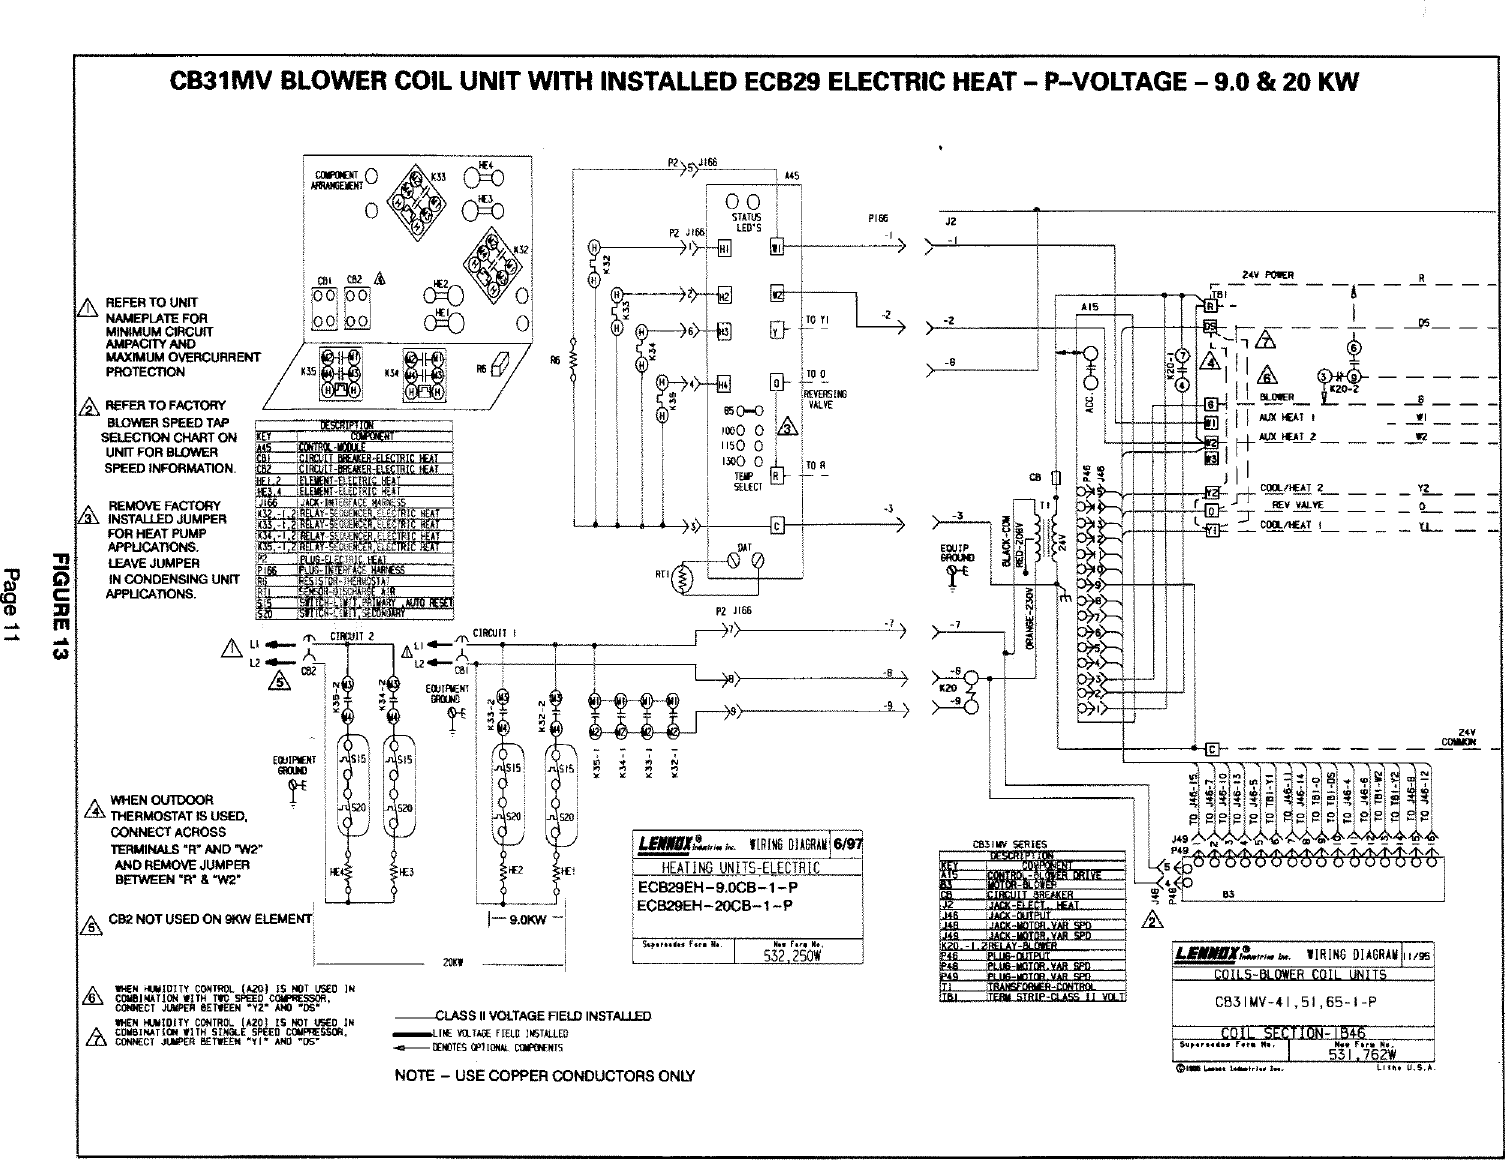 Compressor Wiring Diagram Lennox Cb29m Schematic Diagrams Friedrich Air Handler Auxiliary Heater Kit Manual L0805584